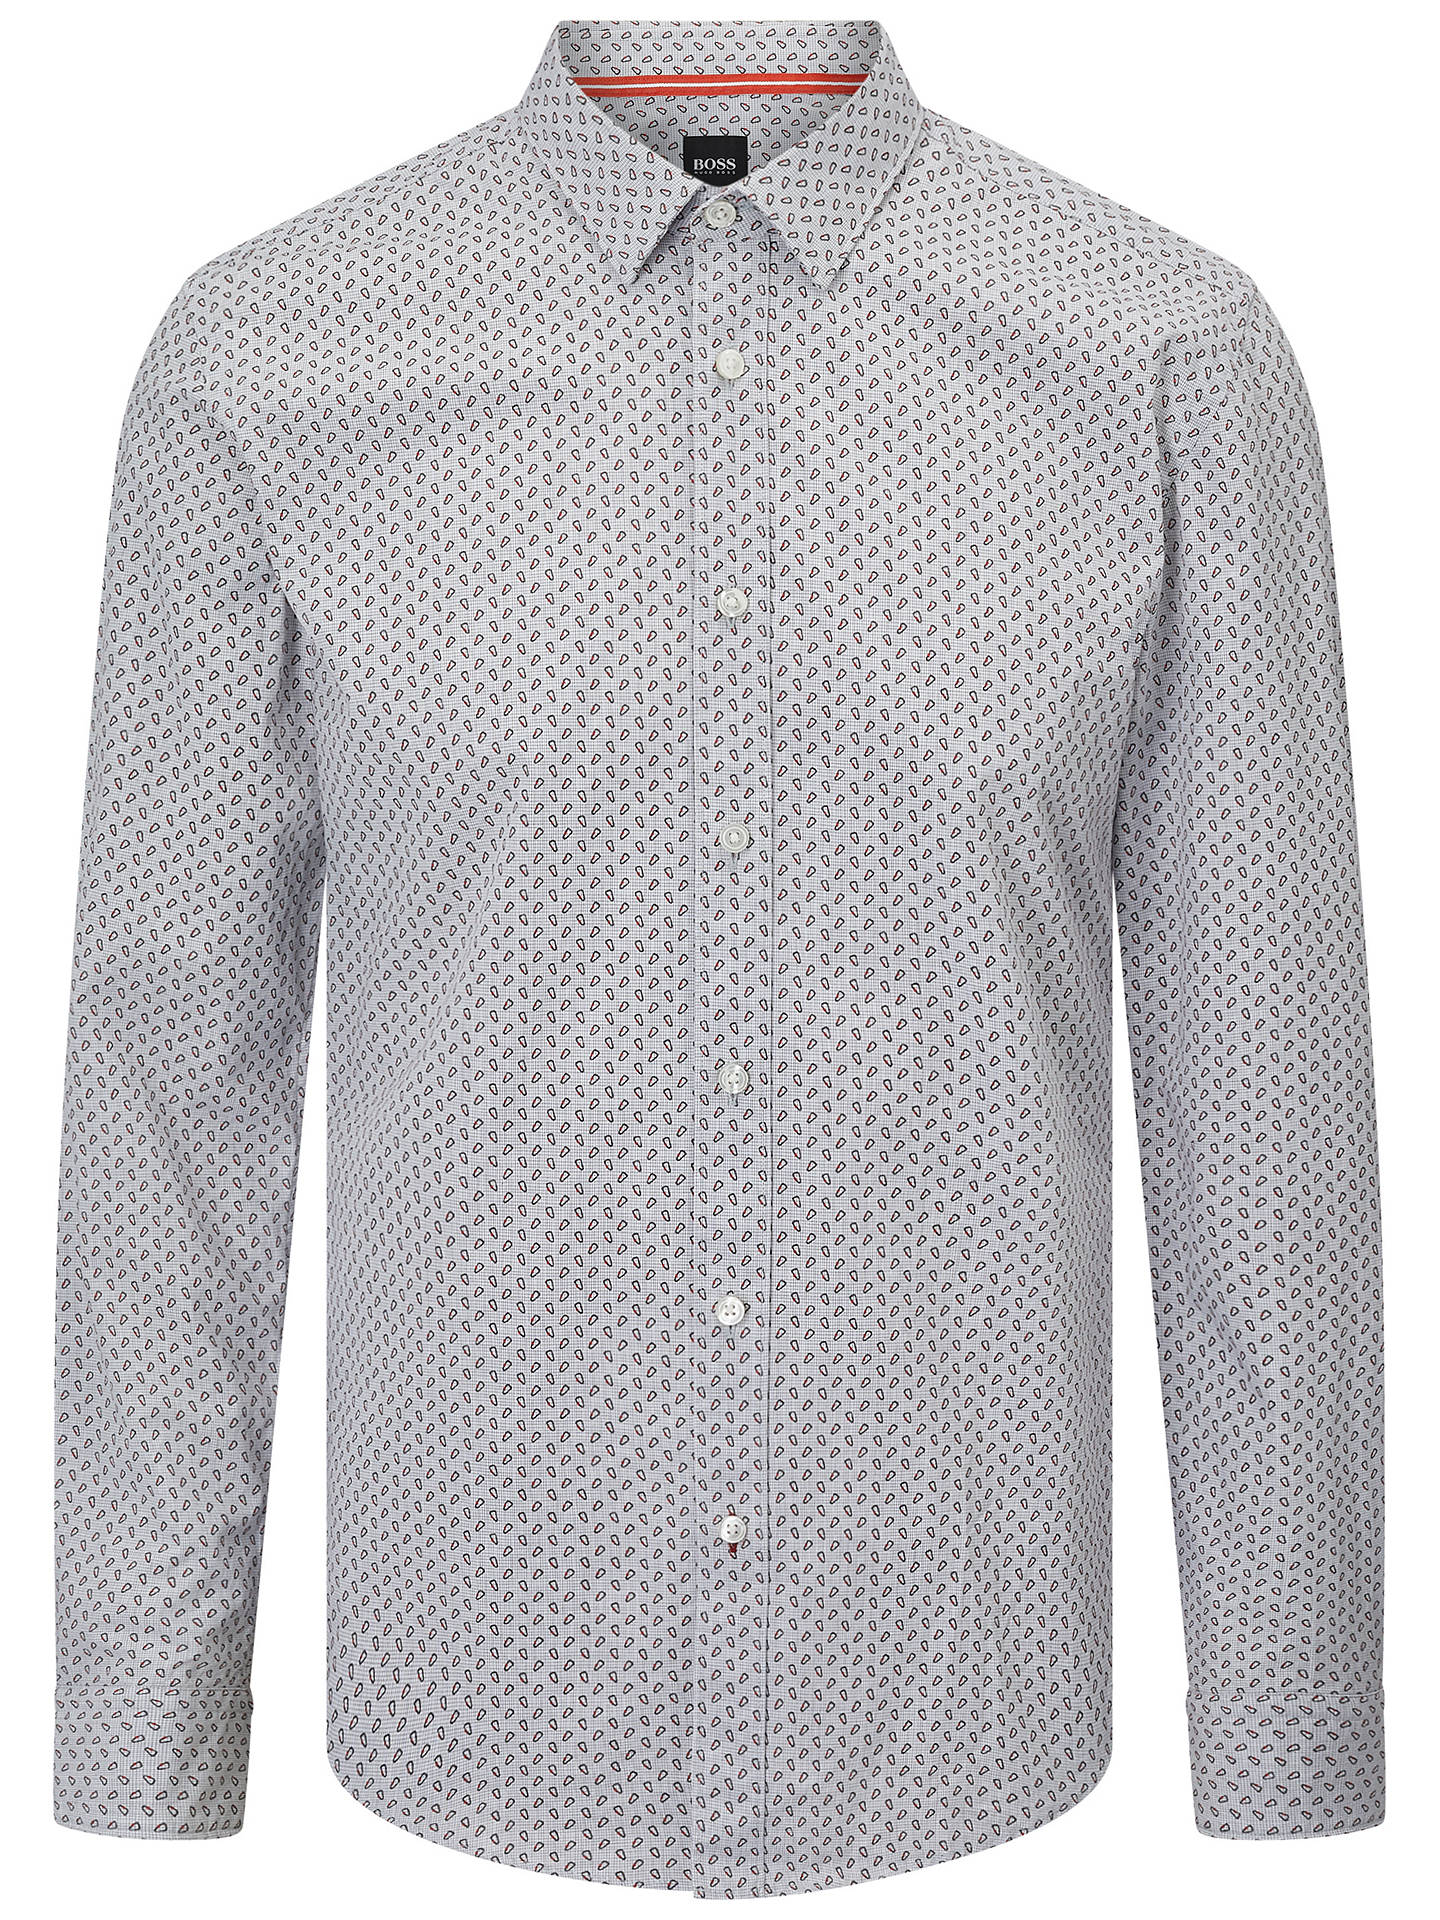 Buy BOSS Ronni Abstract Print Shirt, Open Grey, XXXL Online at johnlewis.com